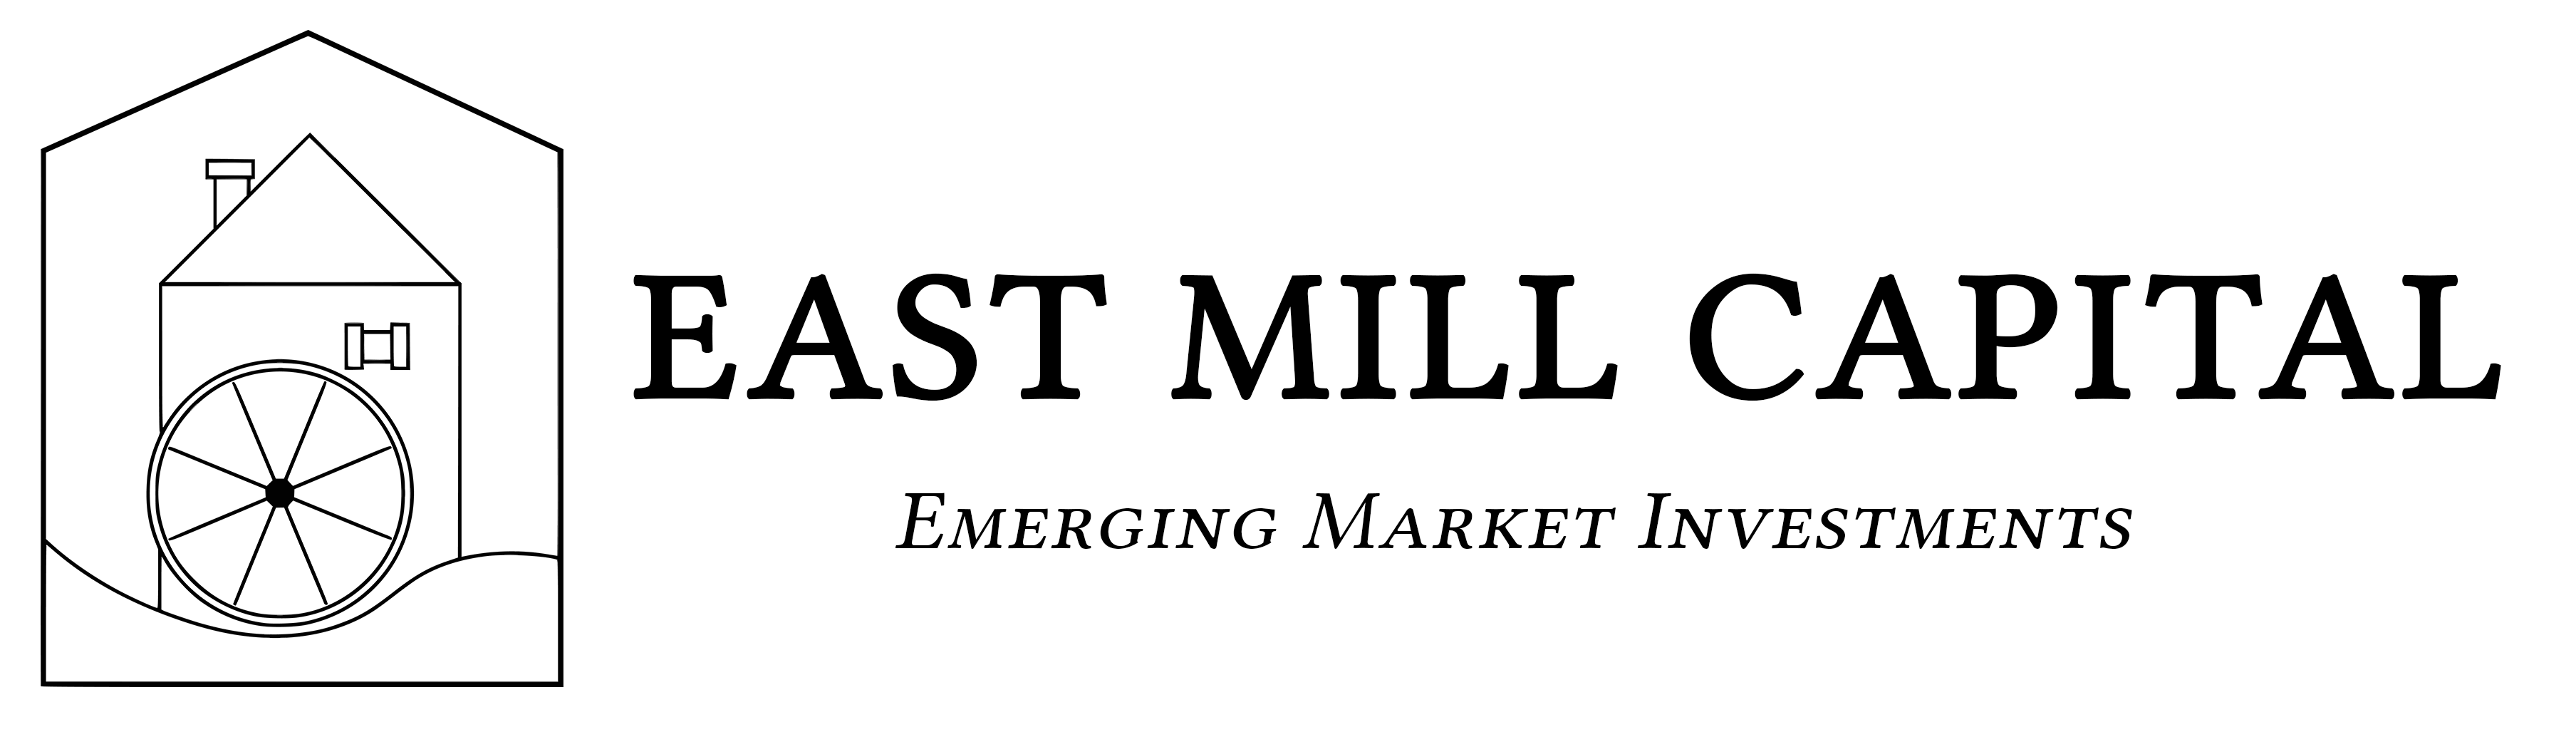 East Mill Capital